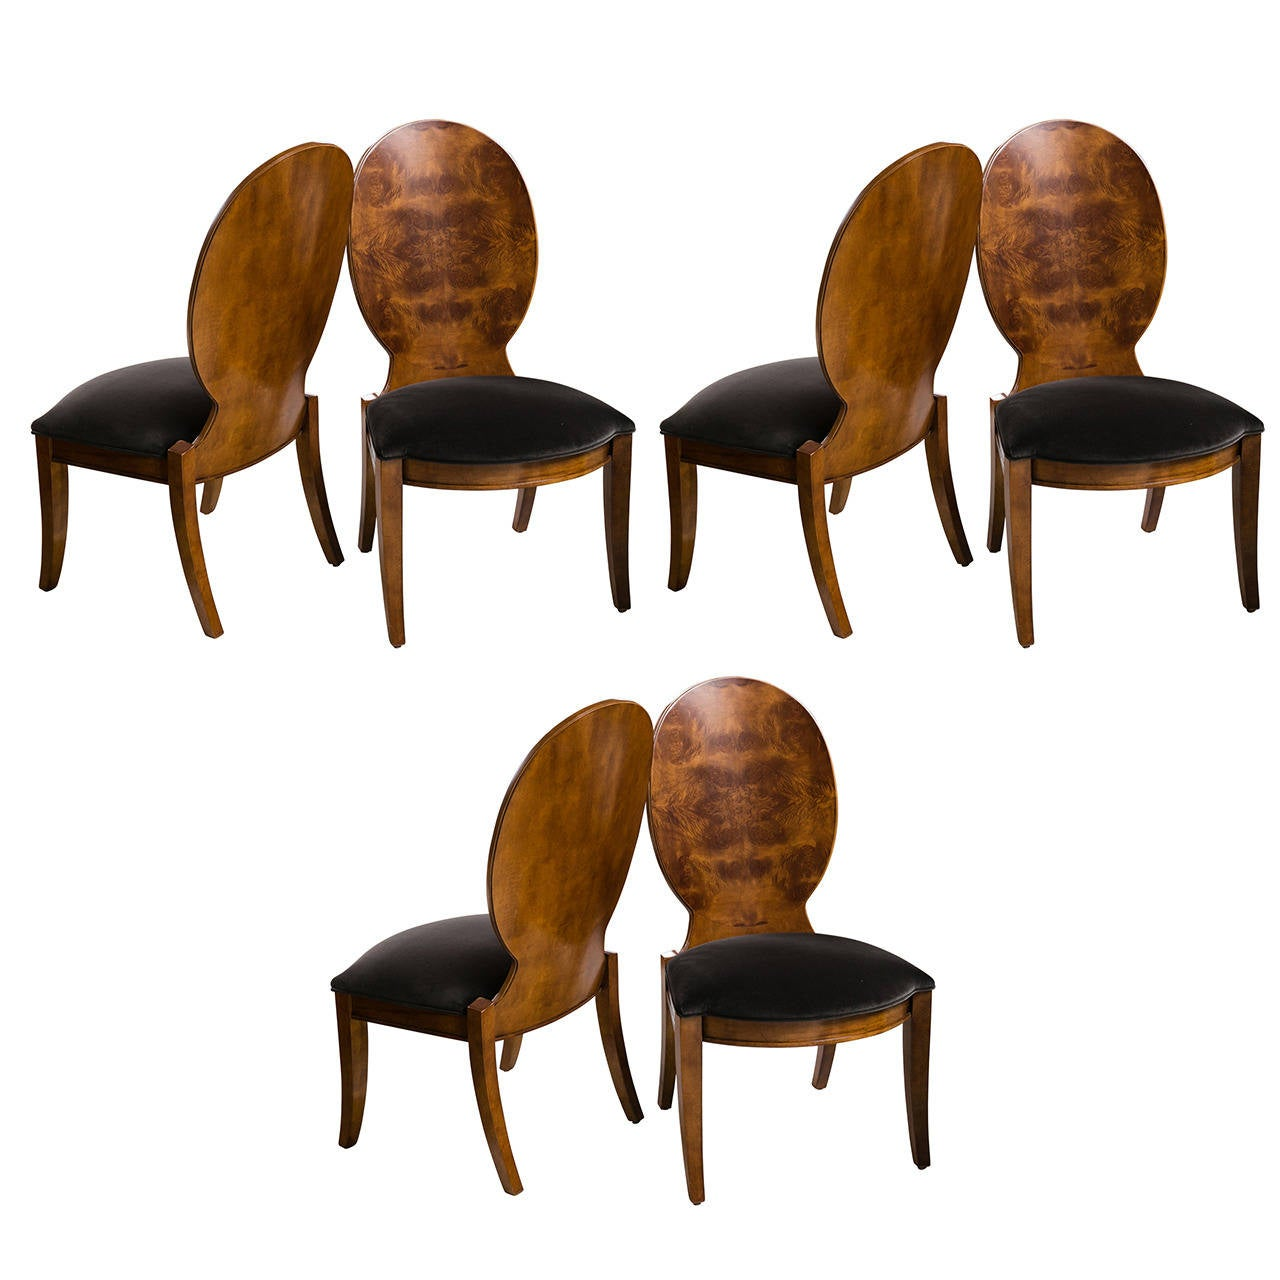 finely crafted bookmatched burl wood set of six dining chairs for sale - Set Of Six Dining Room Chairs